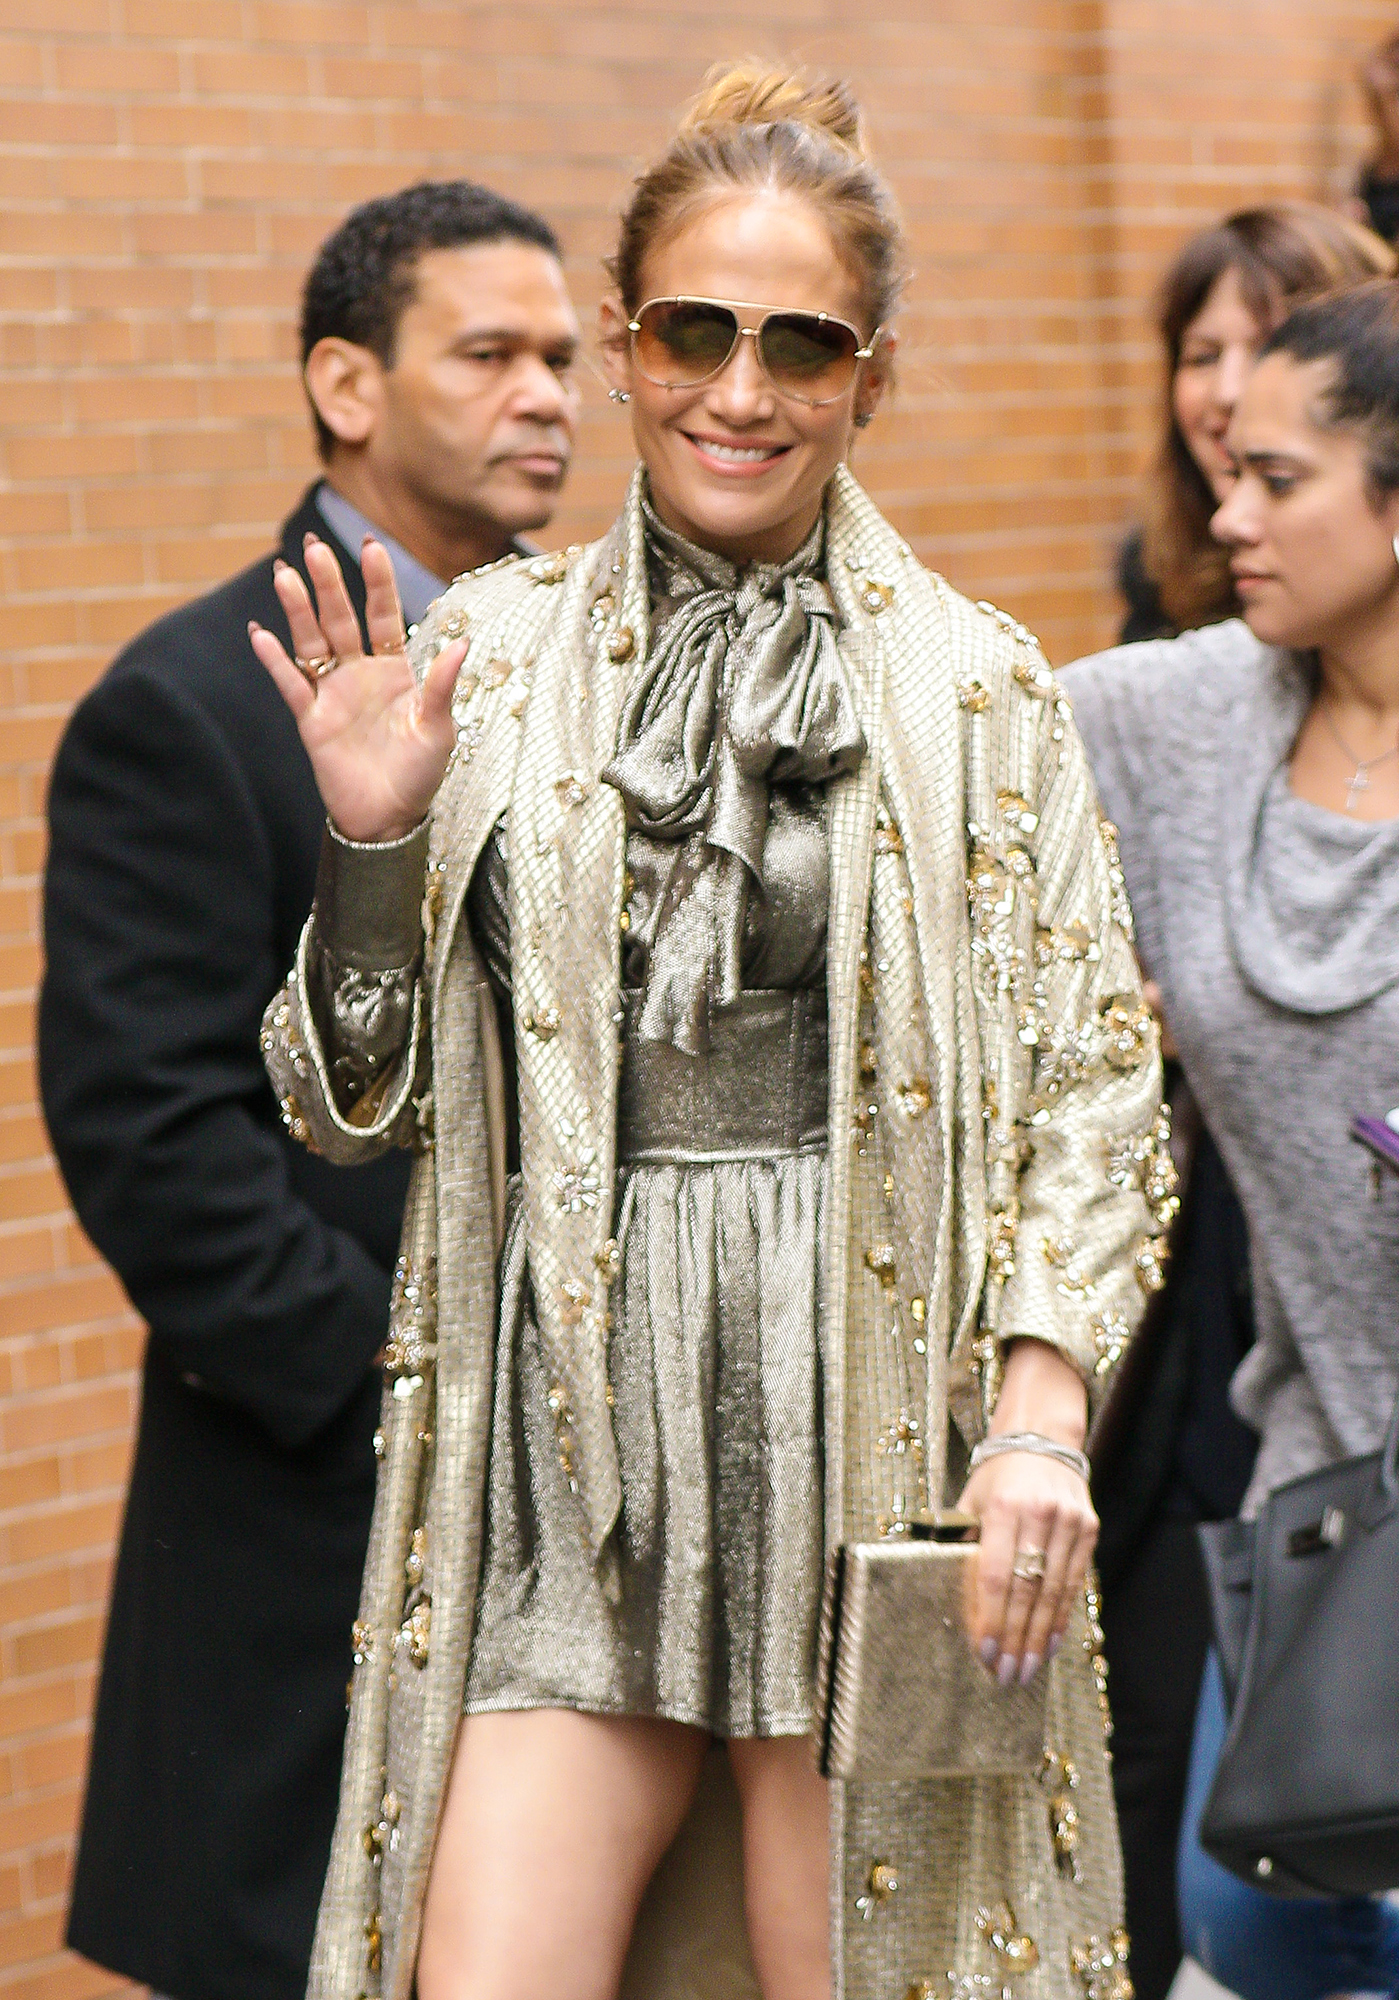 Jennifer Lopez is seen exiting her appearance from The View in New York City.